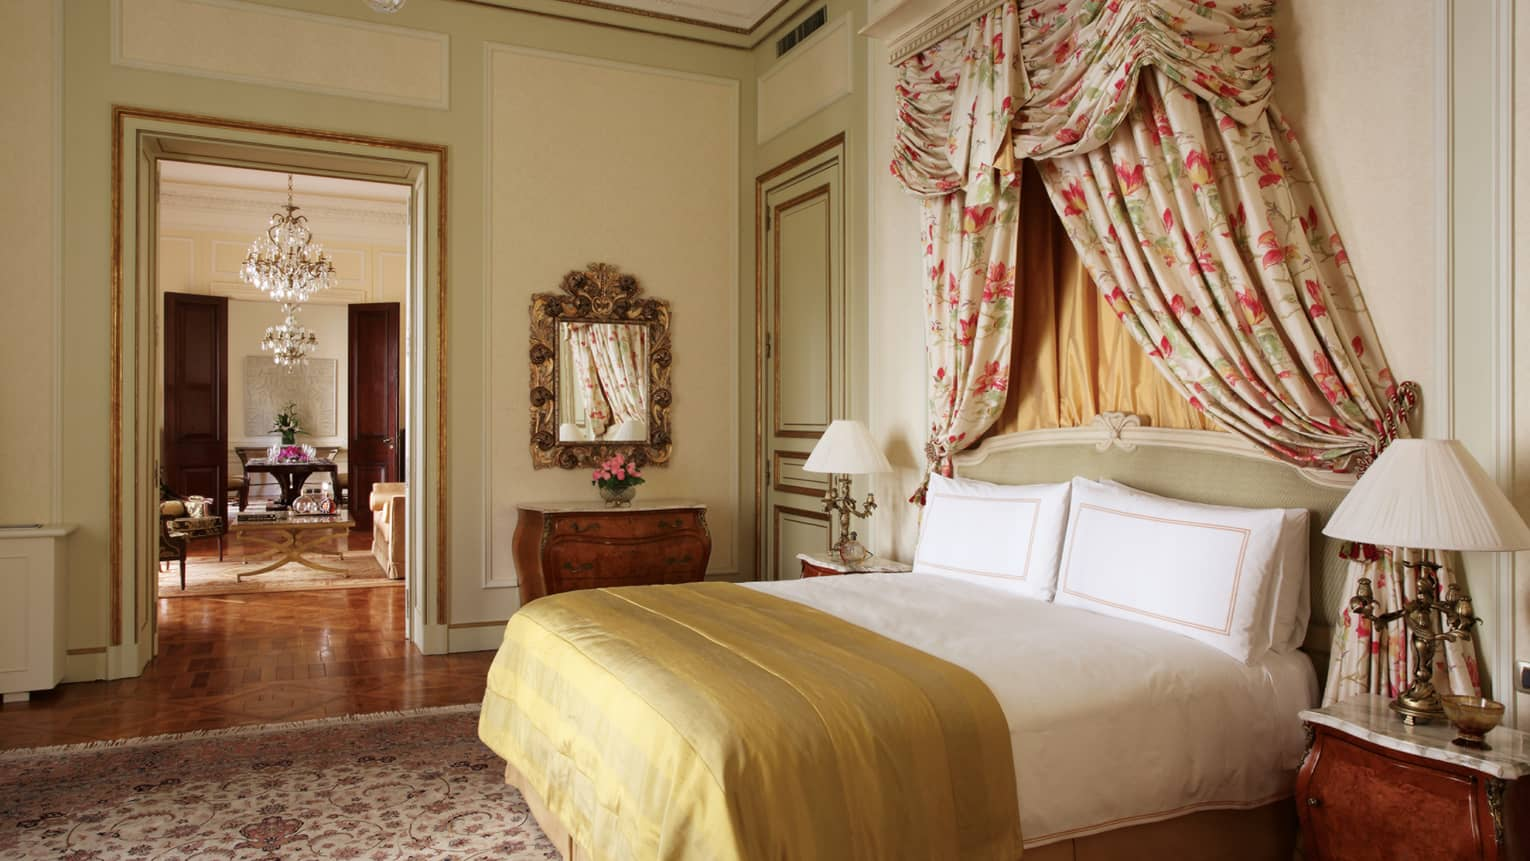 La Mansión Presidential Suite bed with gold blanket, floral drapes above headboard, door to dining room